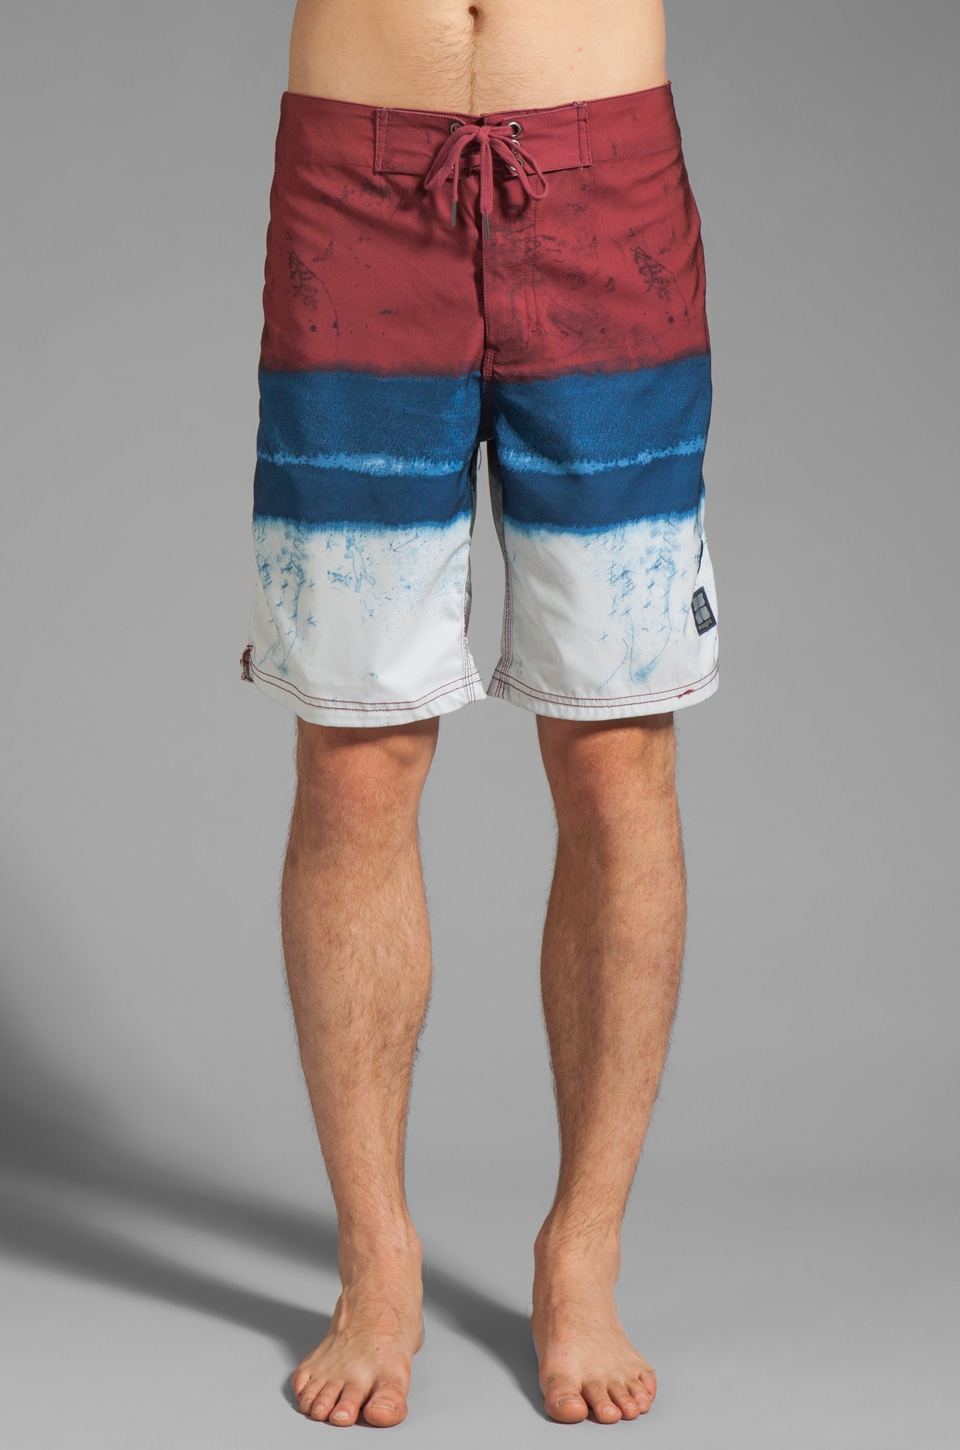 Insight Le Blur Boardshort in Deadbeet